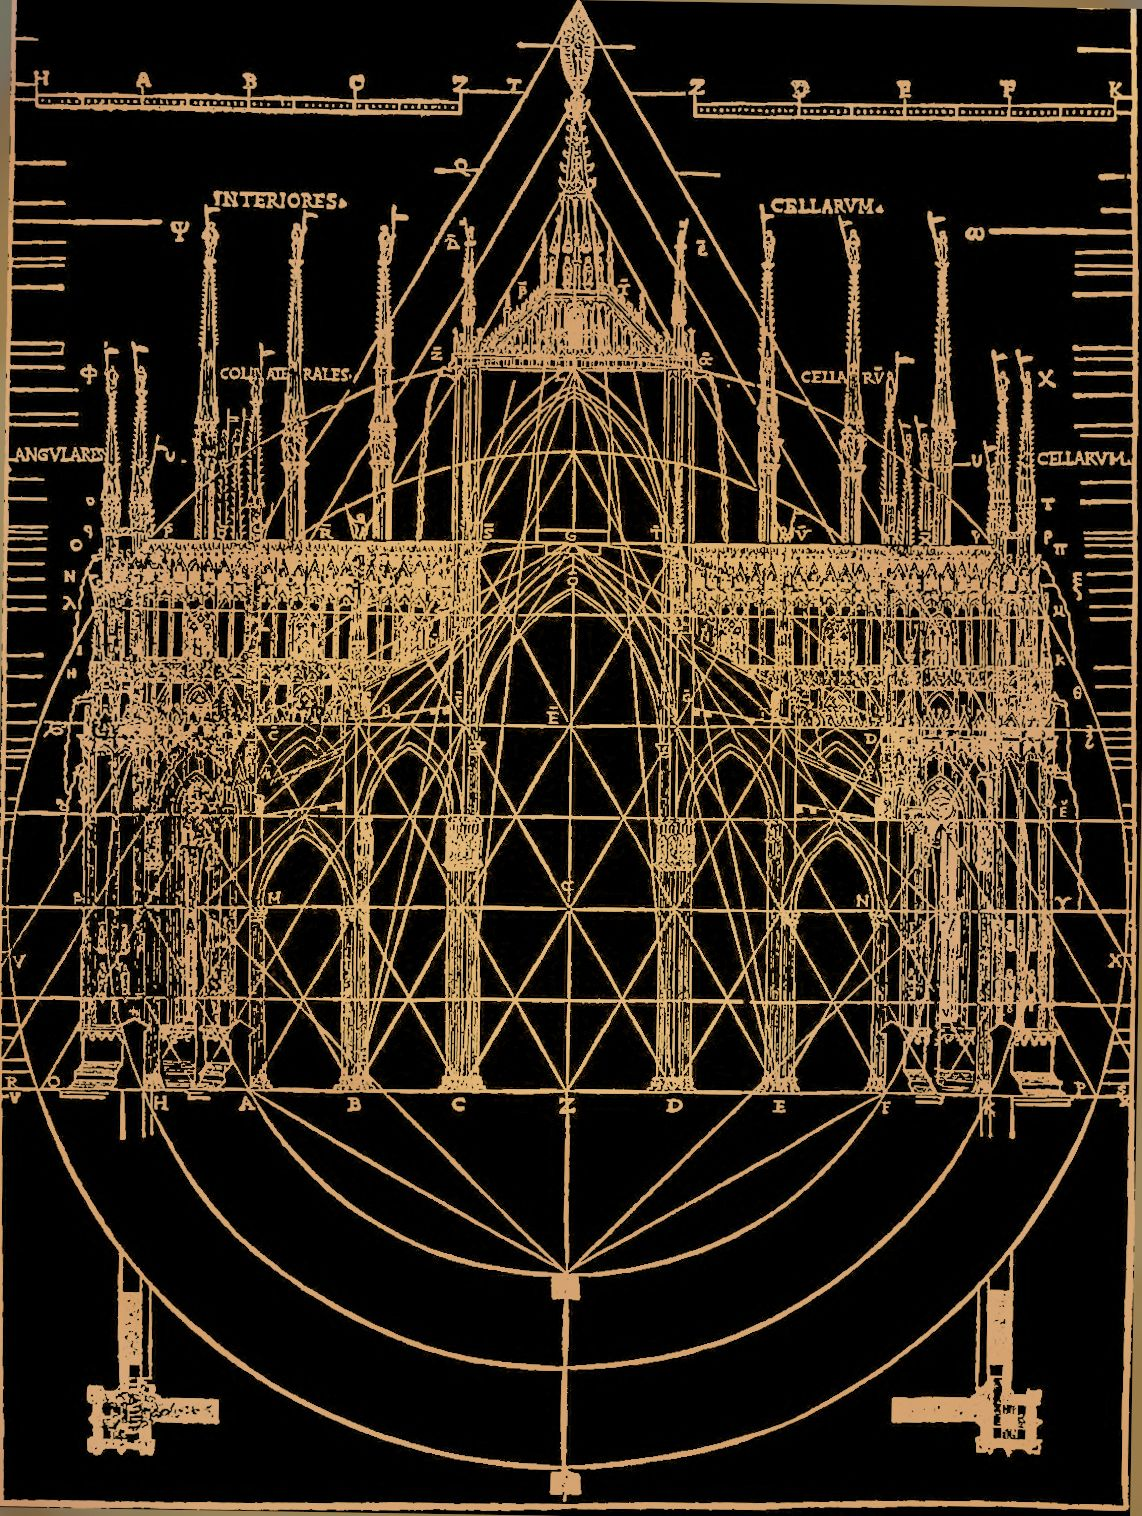 parts of gothic cathedral architecture google search the american eldritch latent geometery in ecclesiastical gothic architecture from the beautiful necessity seven essays on theosophy and architecture by